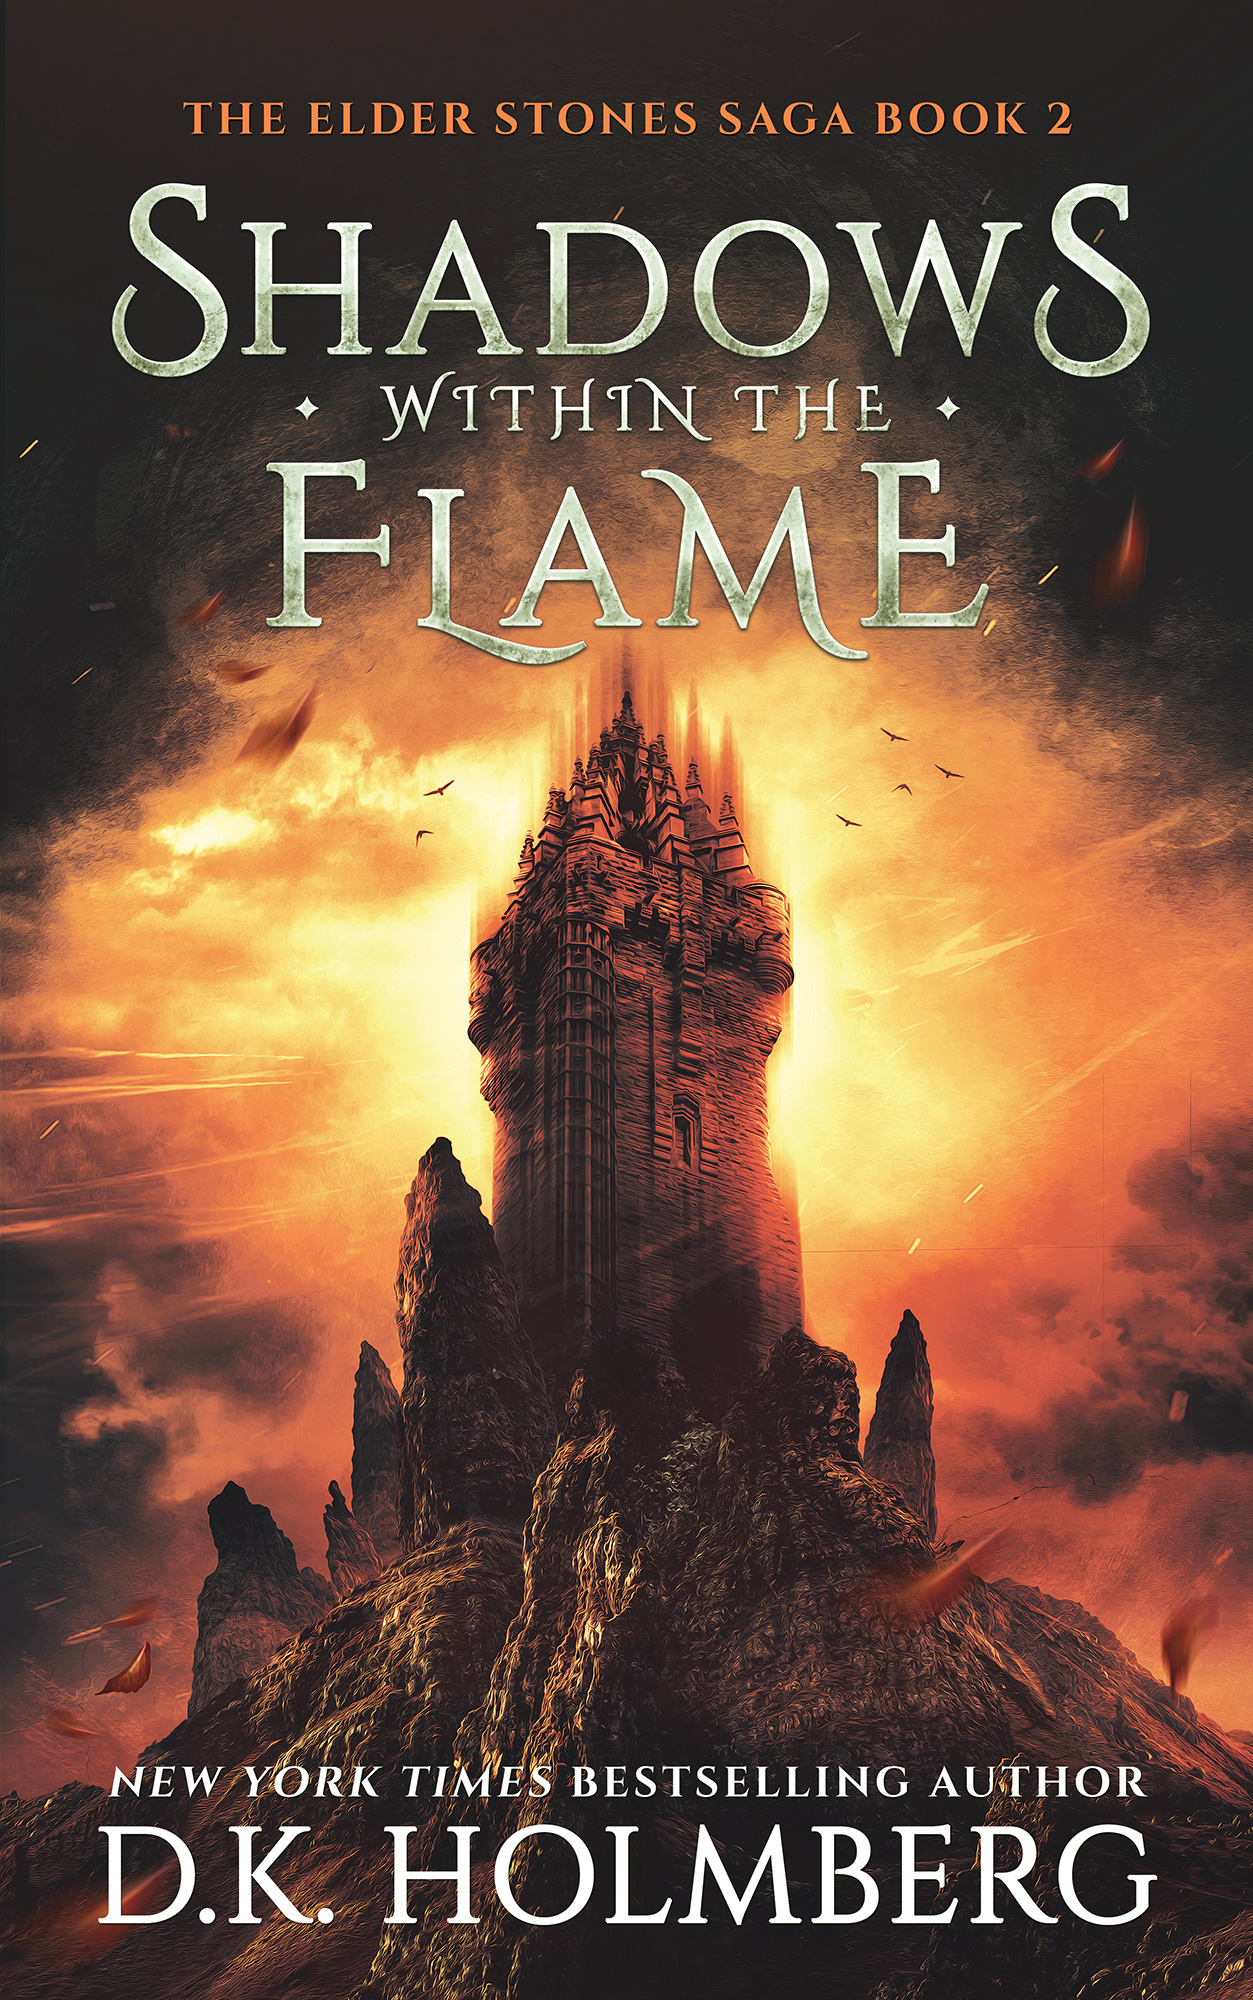 https://www.dkholmberg.com/wp-content/uploads/2019/01/Shadows-Within-the-Flame-Ebook-Small.jpg